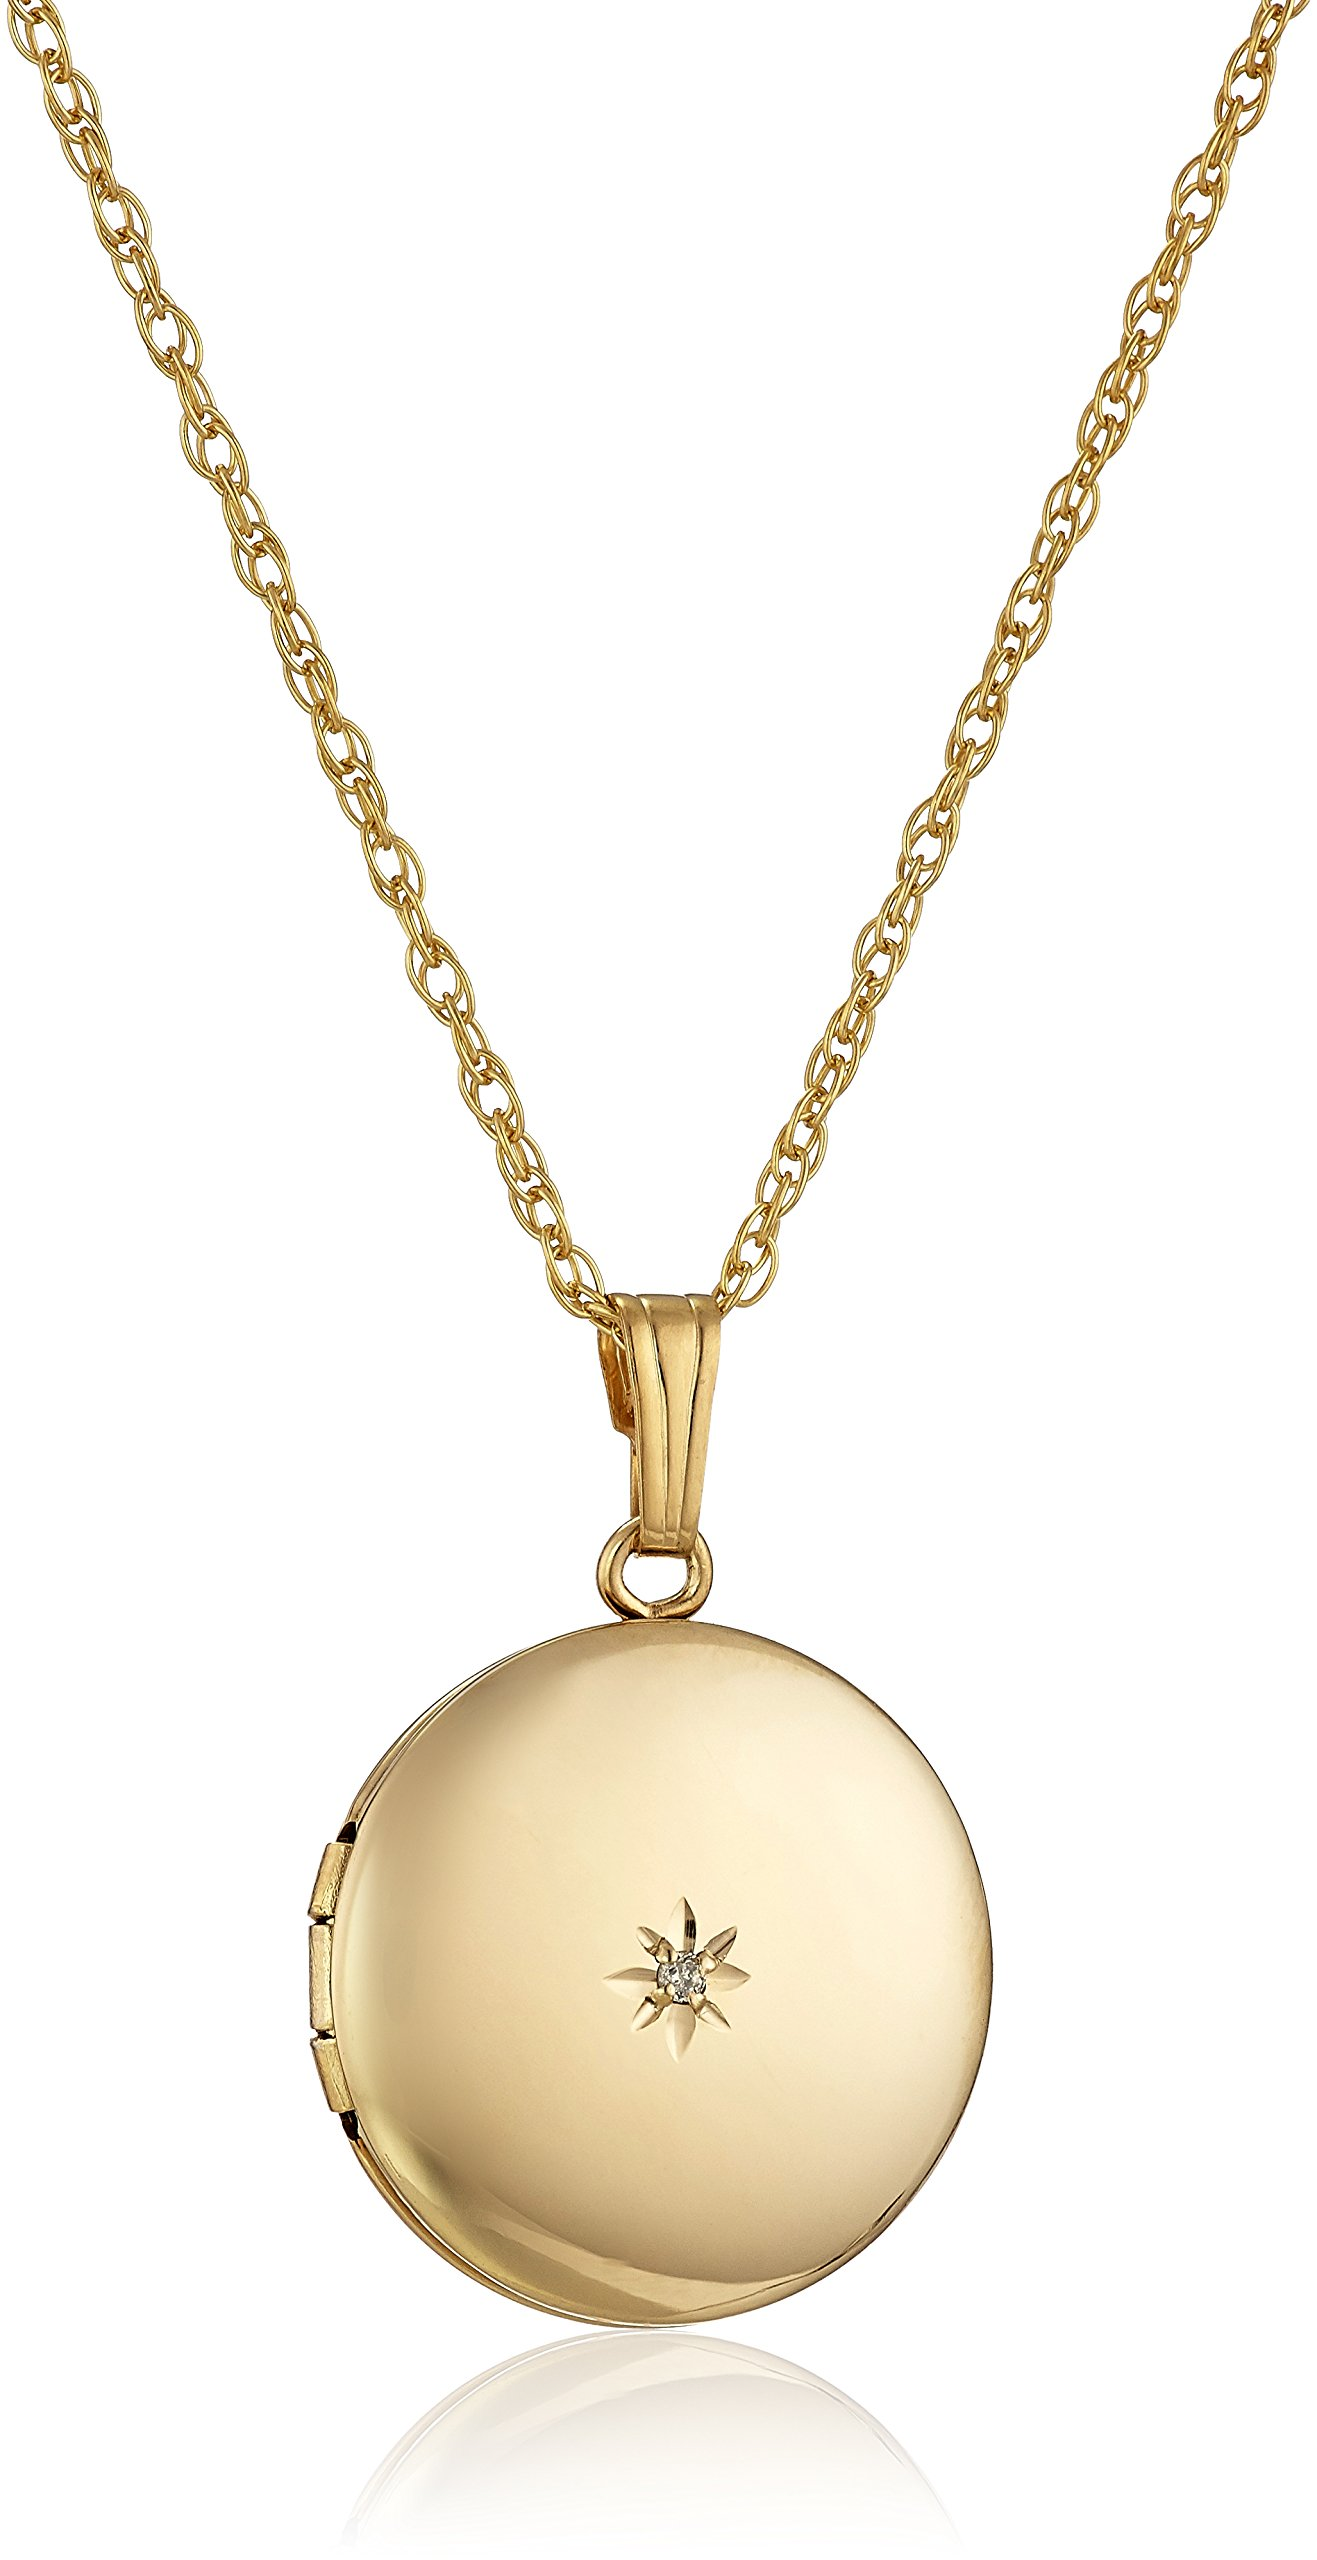 Yellow 14k Gold-Filled Polished Round with Genuine Diamond Locket Necklace, 18''